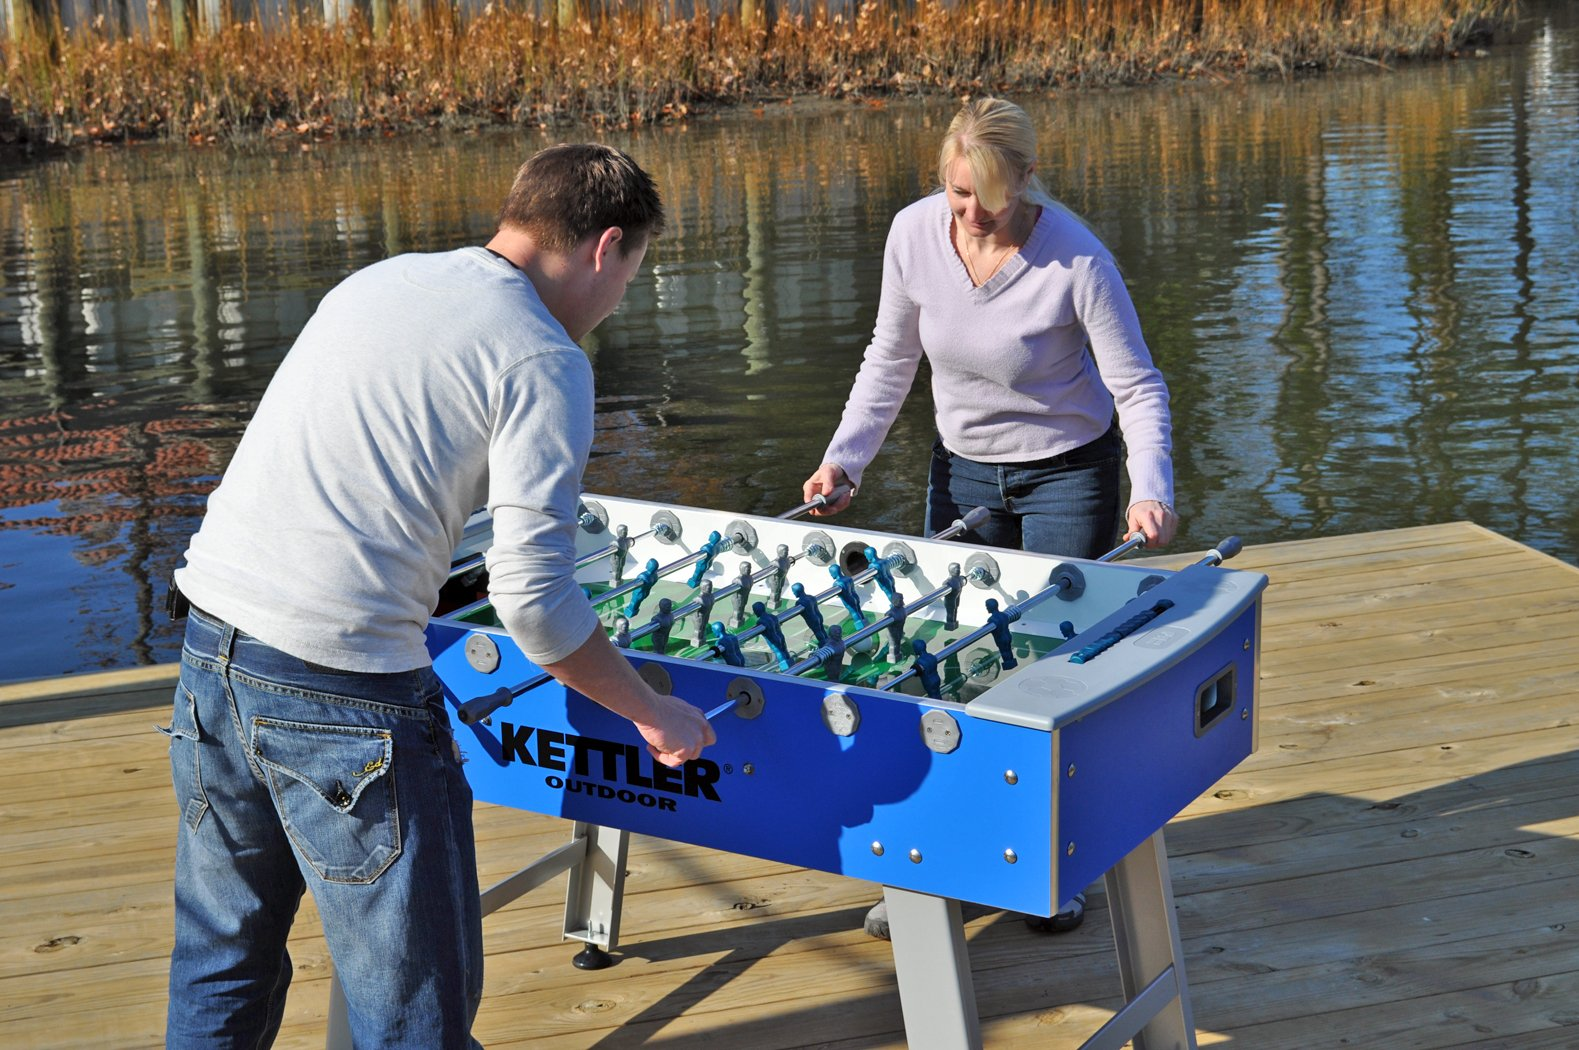 11. The 58-inch Kettler Cavalier, and Outdoor Foosball Table